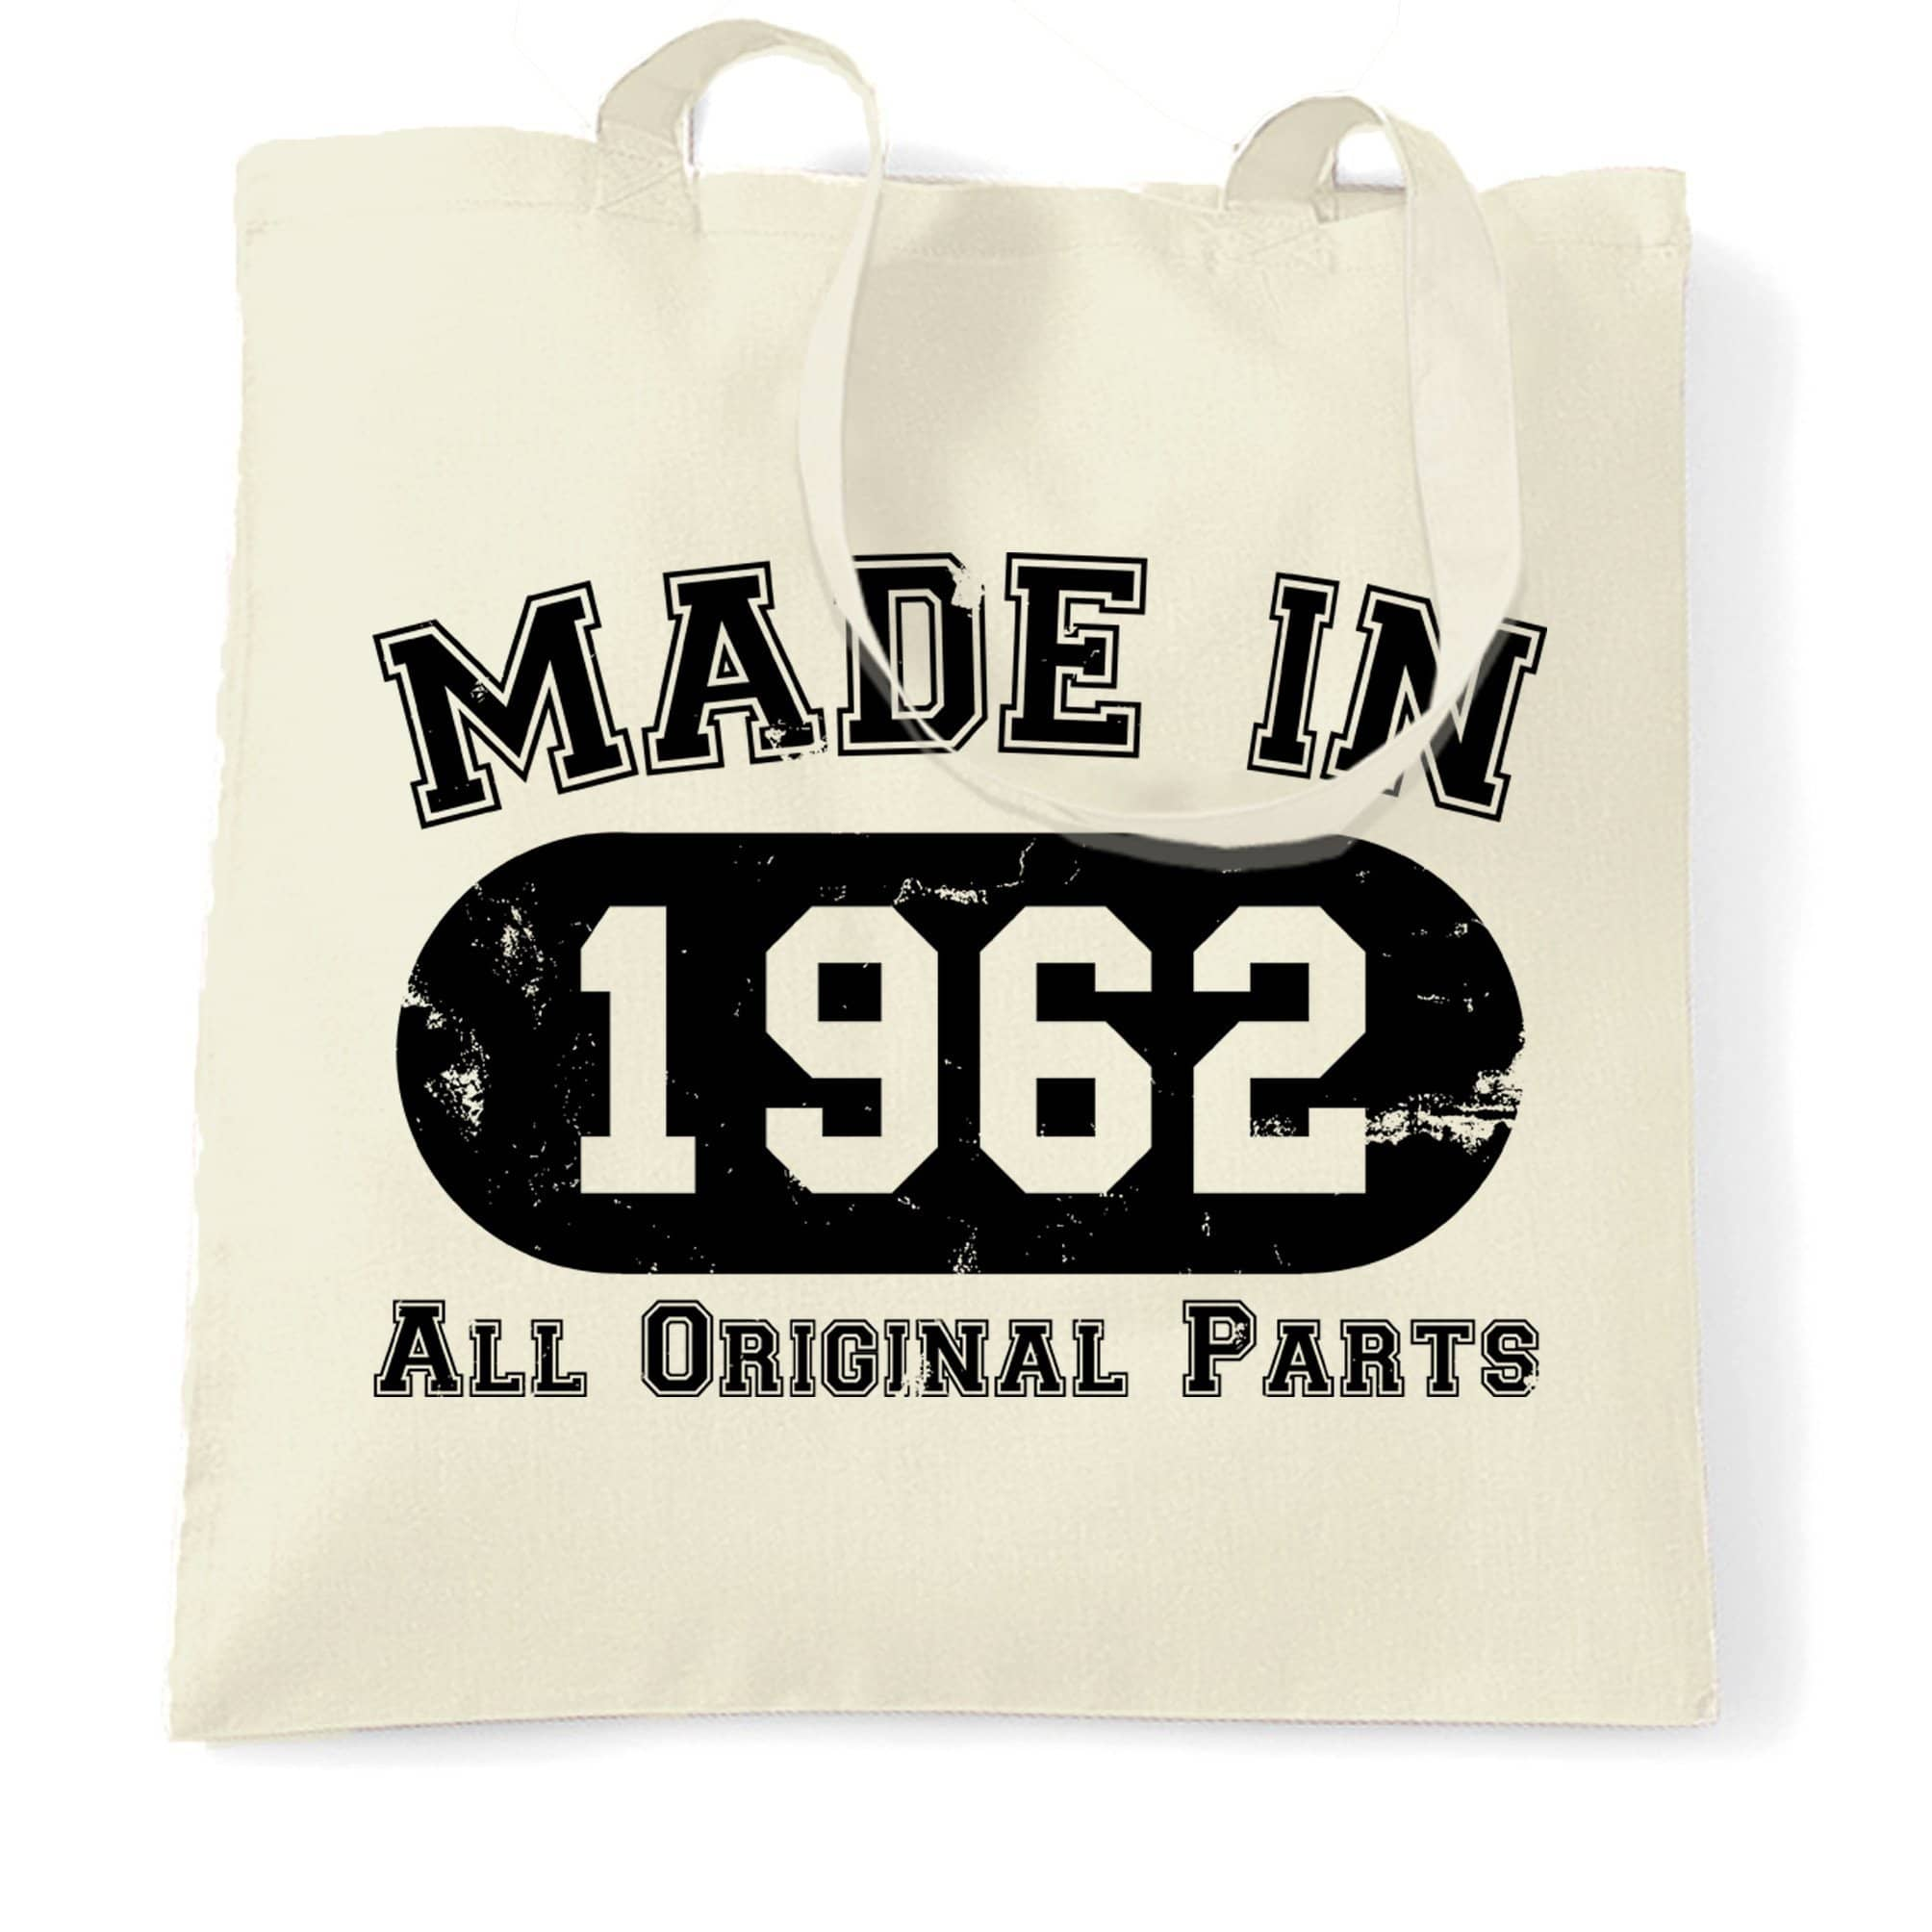 Made in 1962 All Original Parts Tote Bag [Distressed]